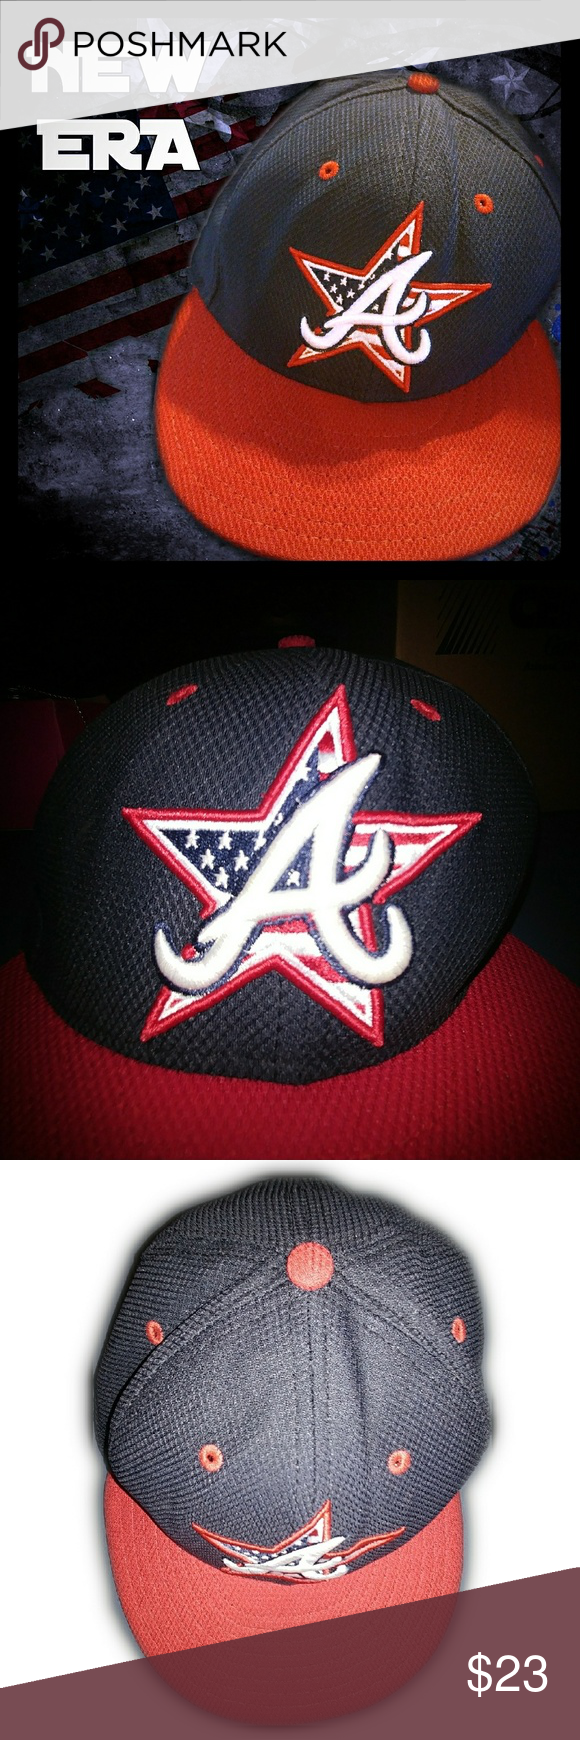 NEW ERA MLB 59Fifty Atlanta Braves Fitted Hat Excellent